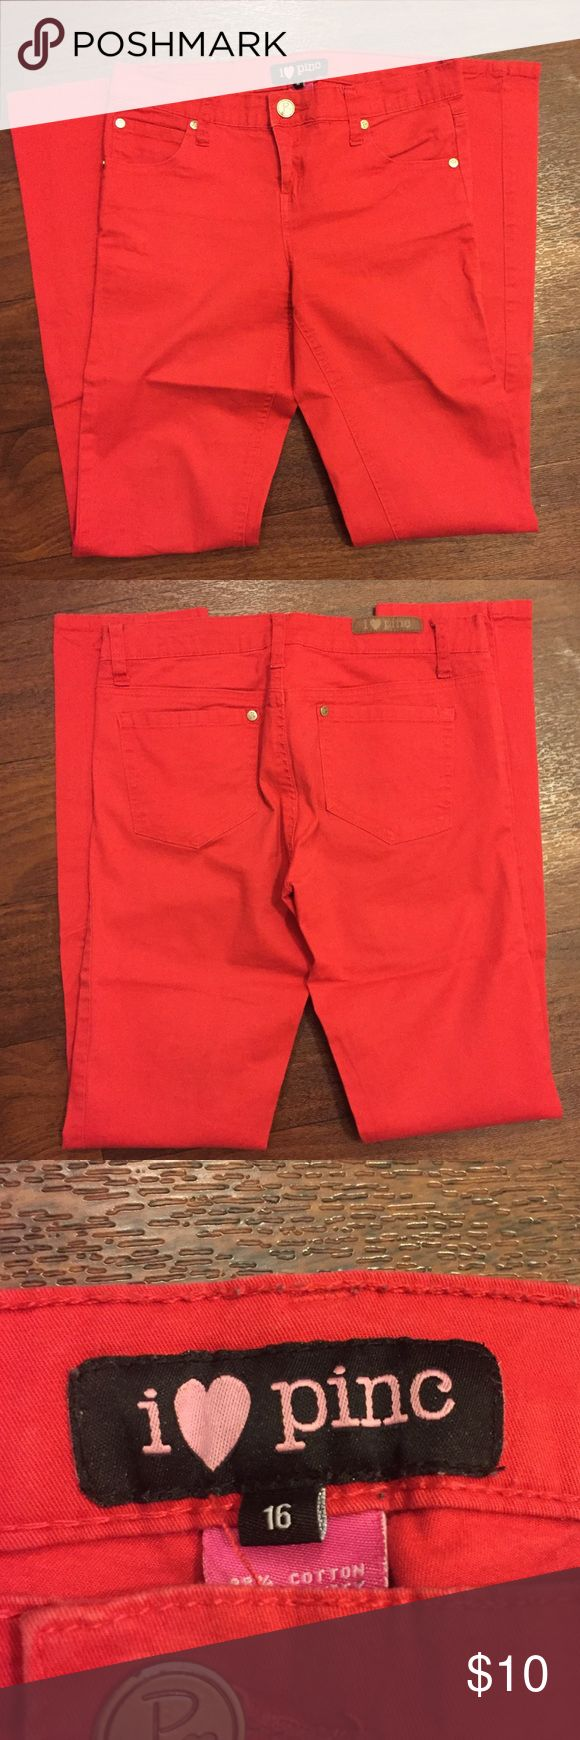 Red skinny pants Red stretchy skinny pants Bottoms Jeans